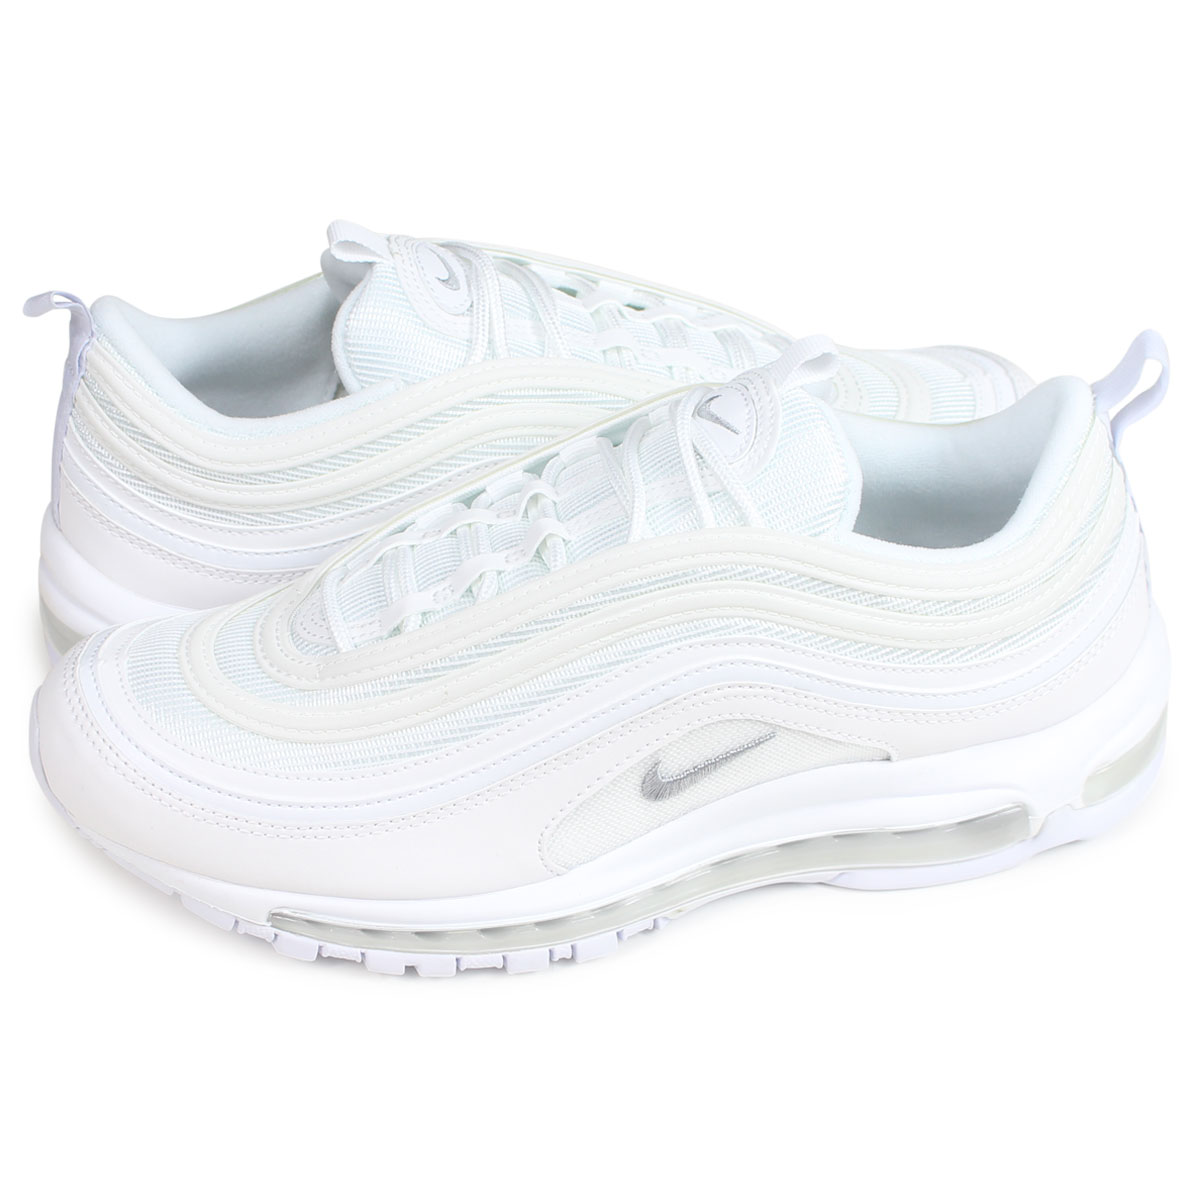 new arrival 86893 1a831 Nike NIKE Air Max 97 sneakers men AIR MAX 97 OG white 921,826-101  1 30  Shinnyu load   191